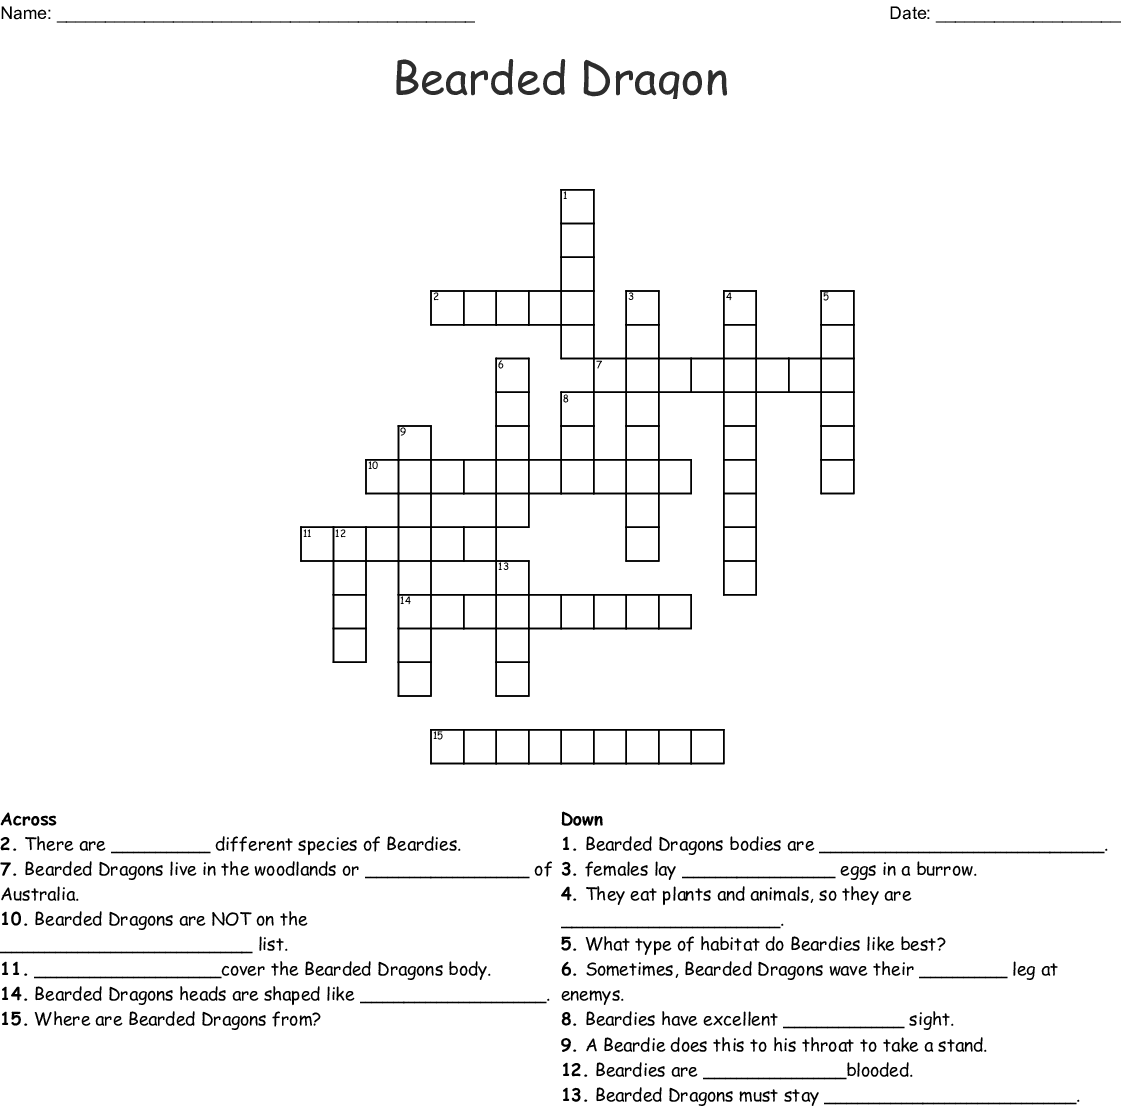 Bearded Dragons Word Search